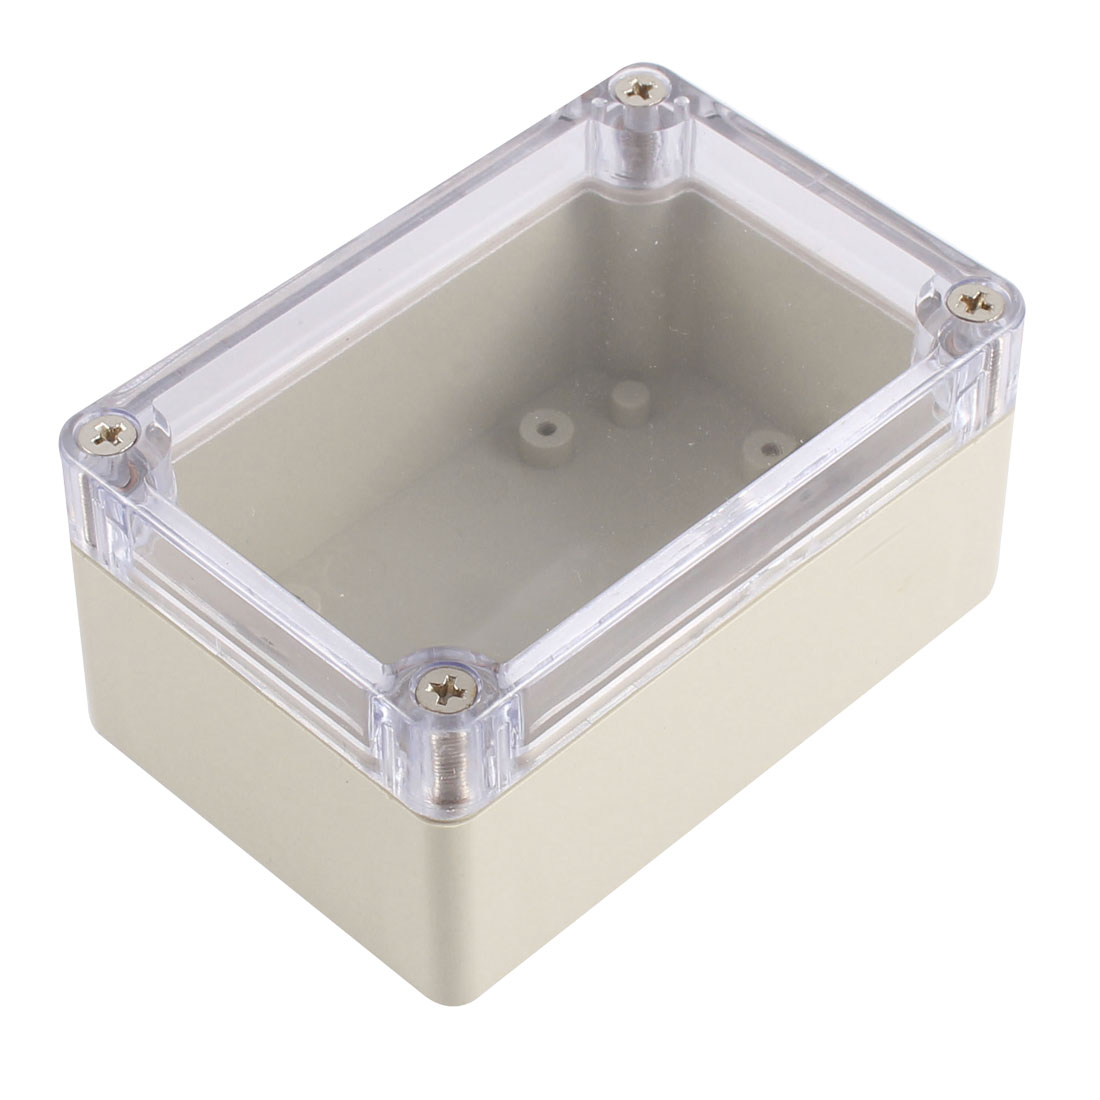 Waterproof Clear Cover Plastic Electronic Project Junction Box Enclosure Case 100 x 68 x 50mm